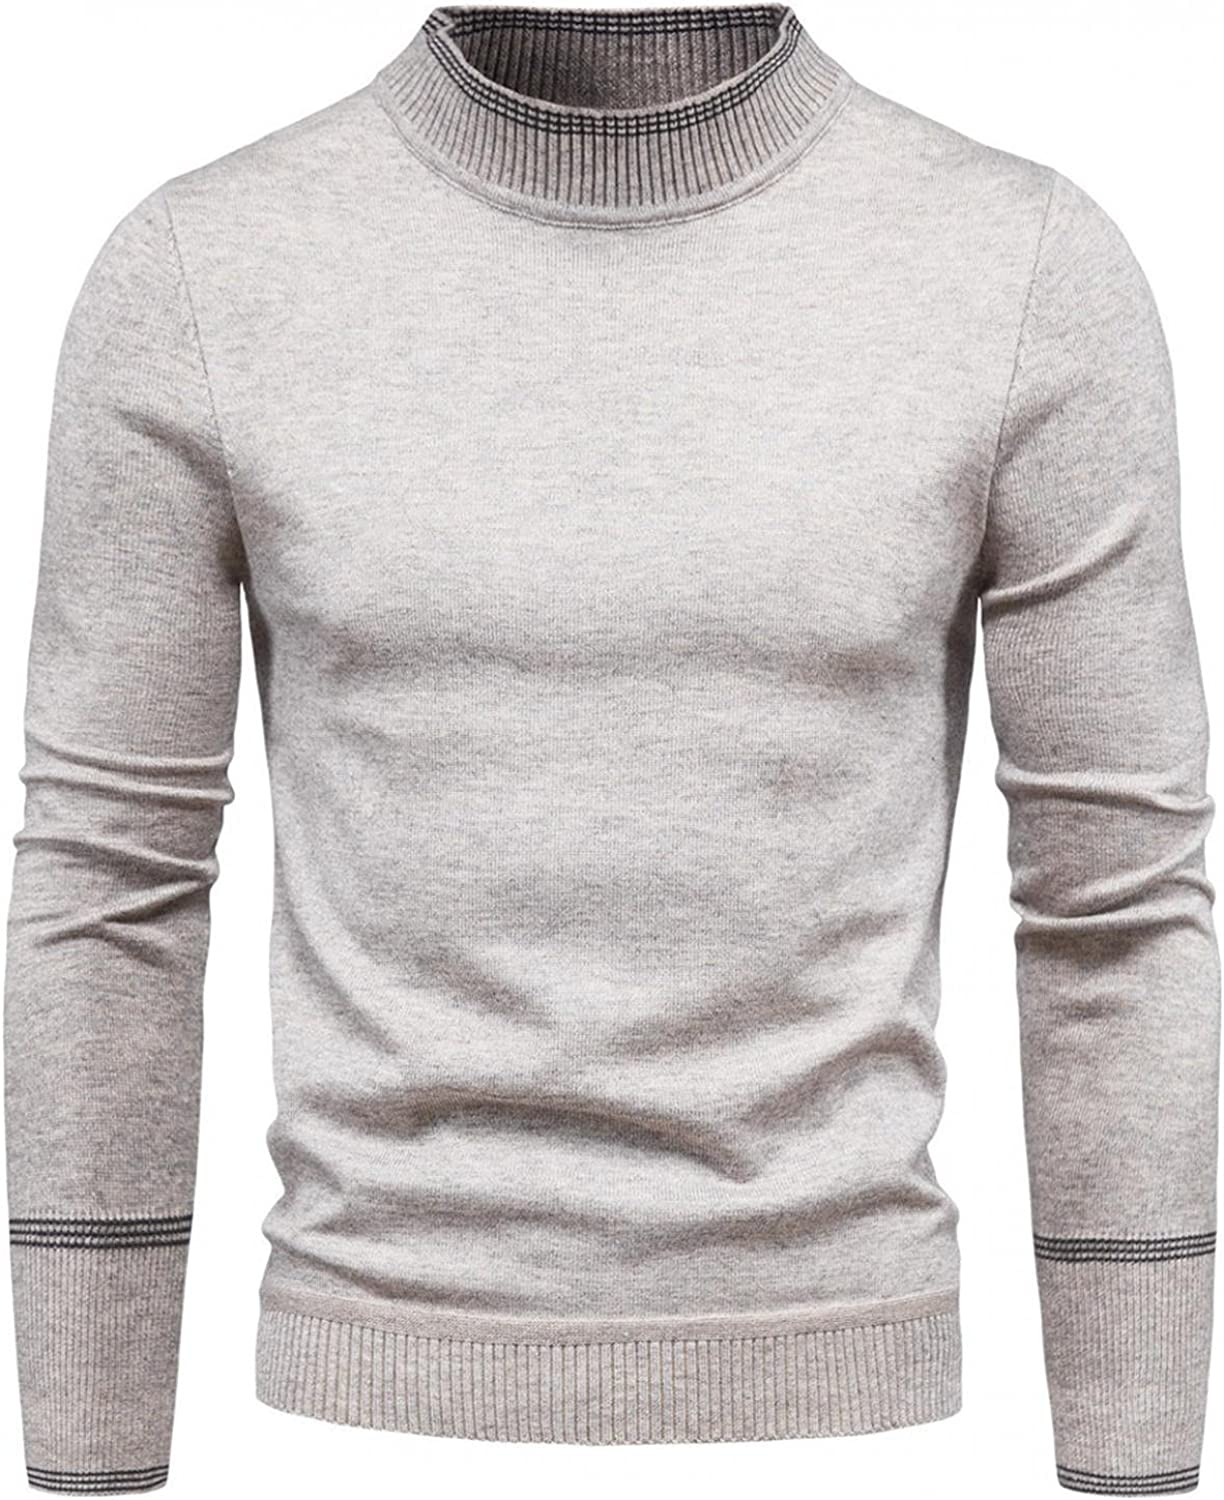 Burband Mens Cable Knit Stitch Thermal Sweaters Cotton Crewneck Slim Fit Basic Pullover Sweaters Knitted Cardigans